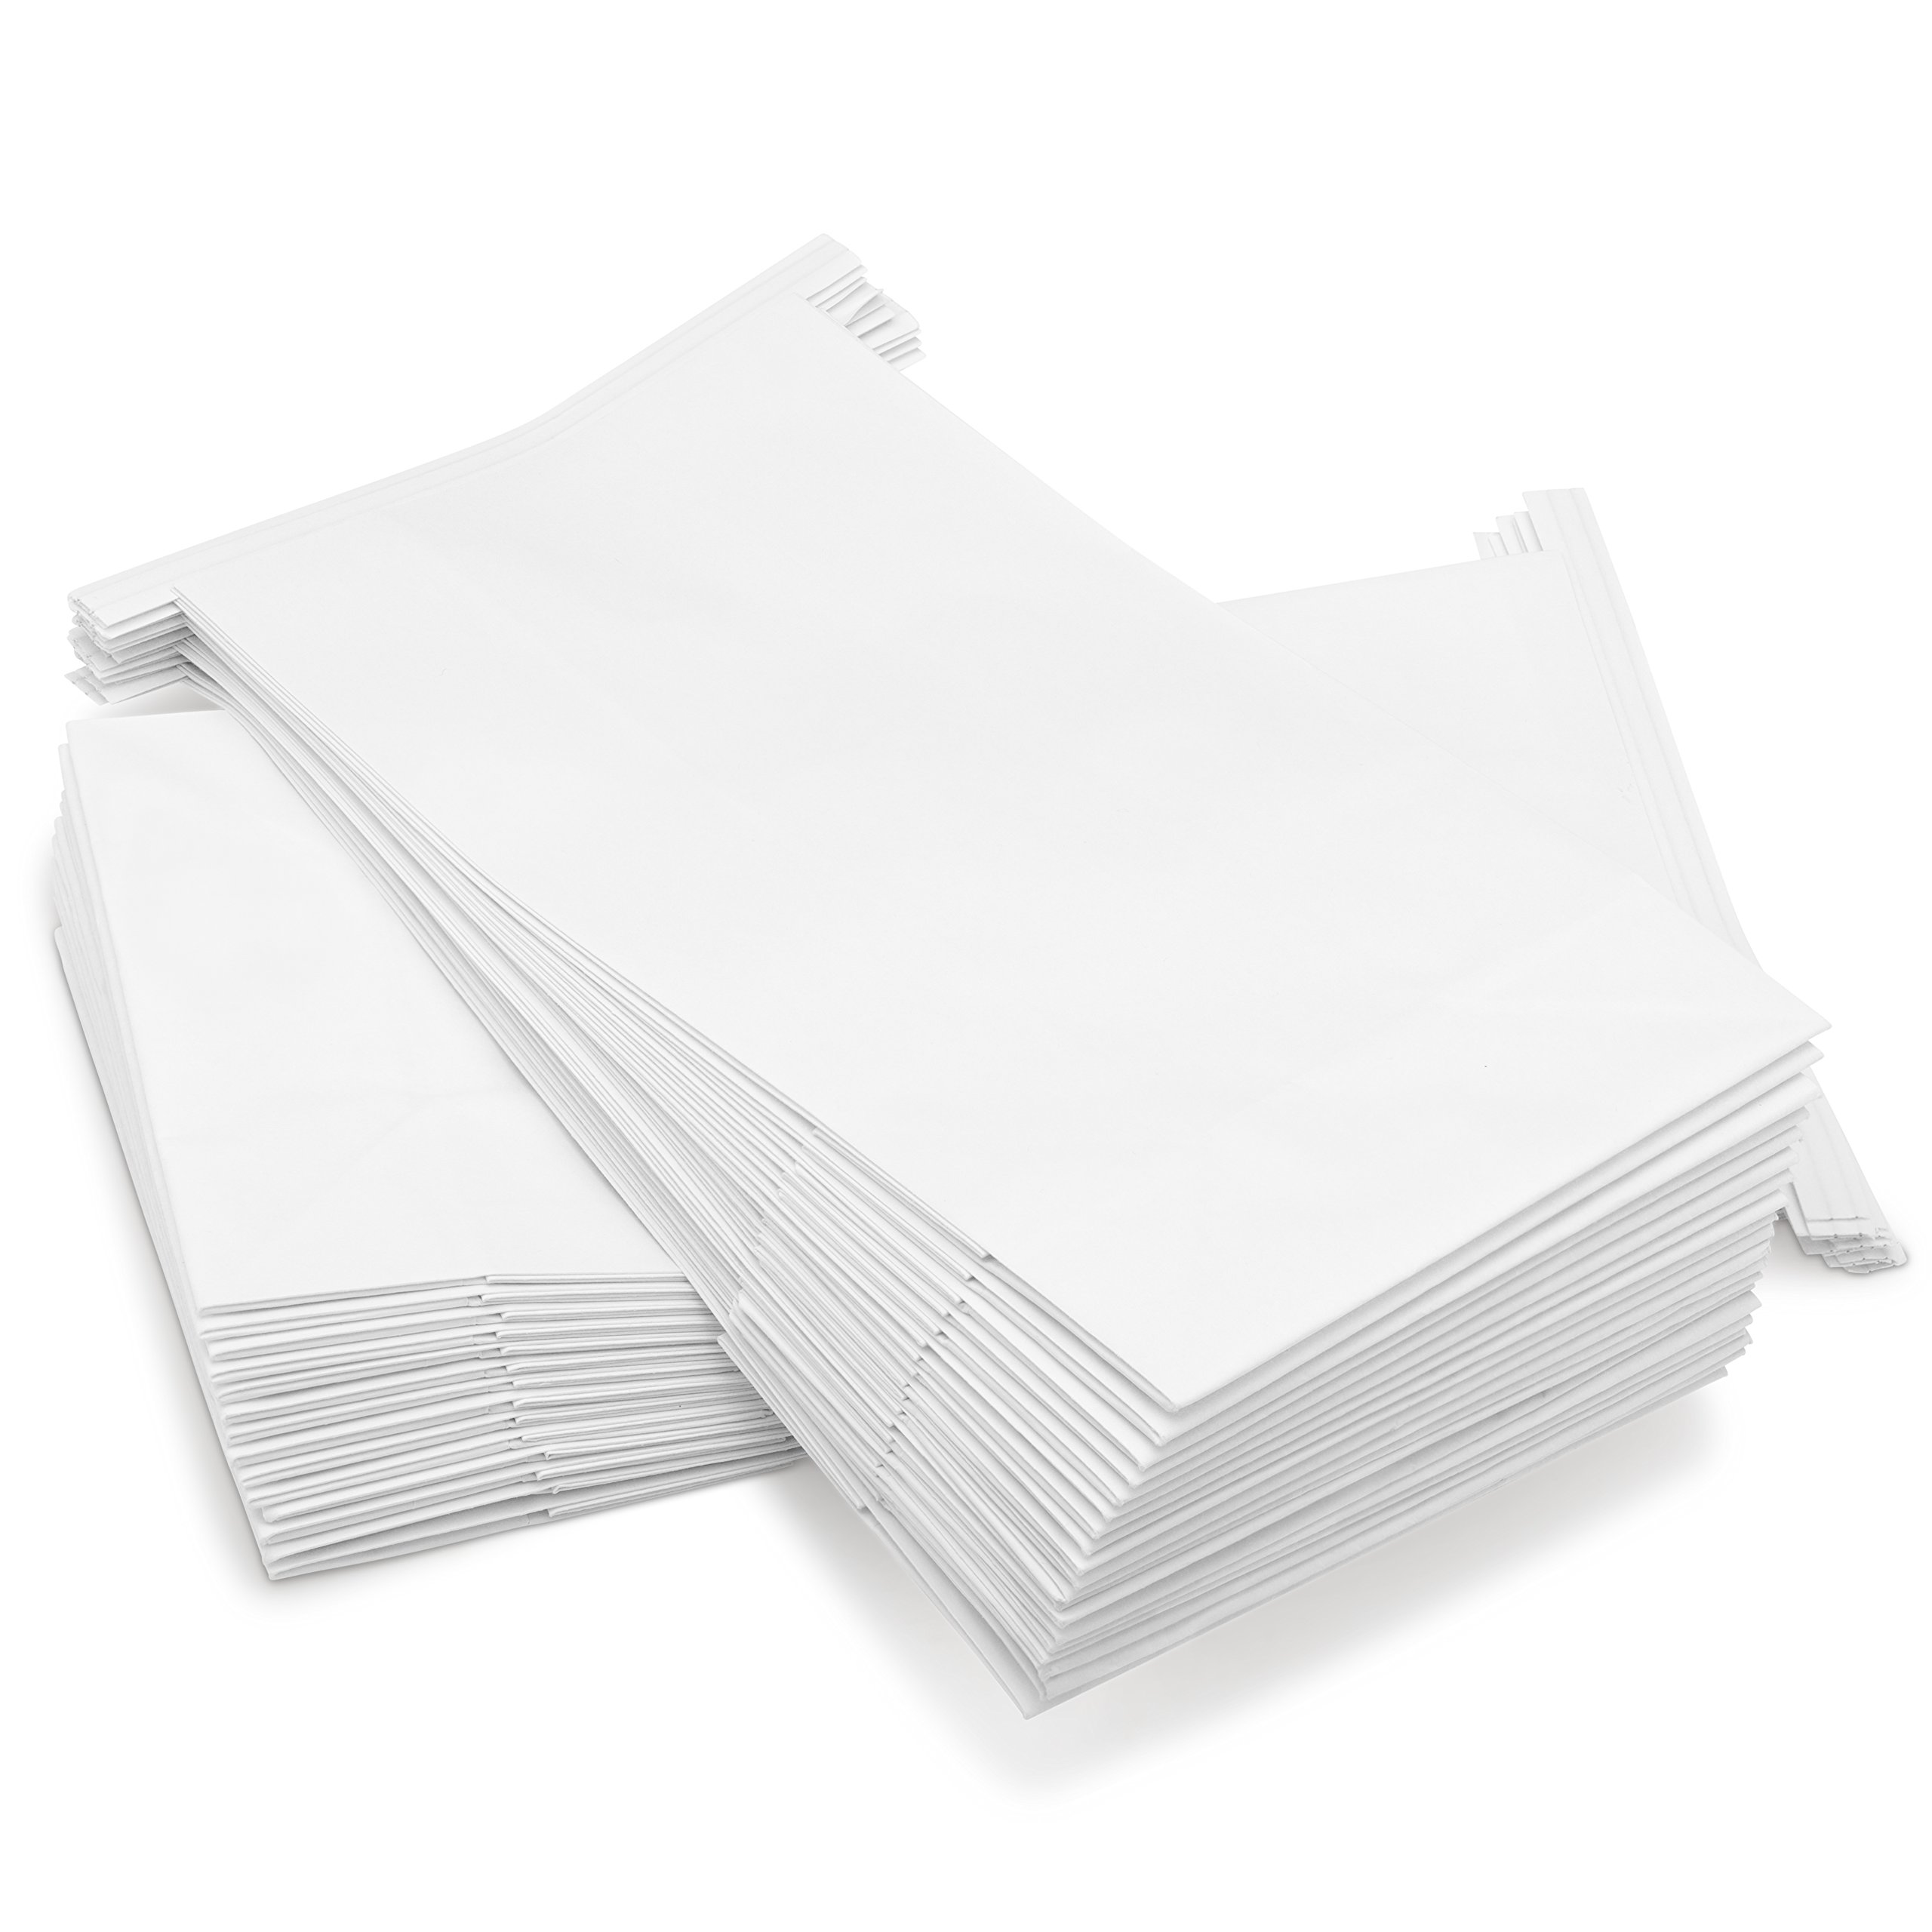 Barf Bags - Vomit Bags for Car, Uber, Travel, and Mornings Sickness - 25 Disposable Emesis Bags by Milton Quality (Image #2)